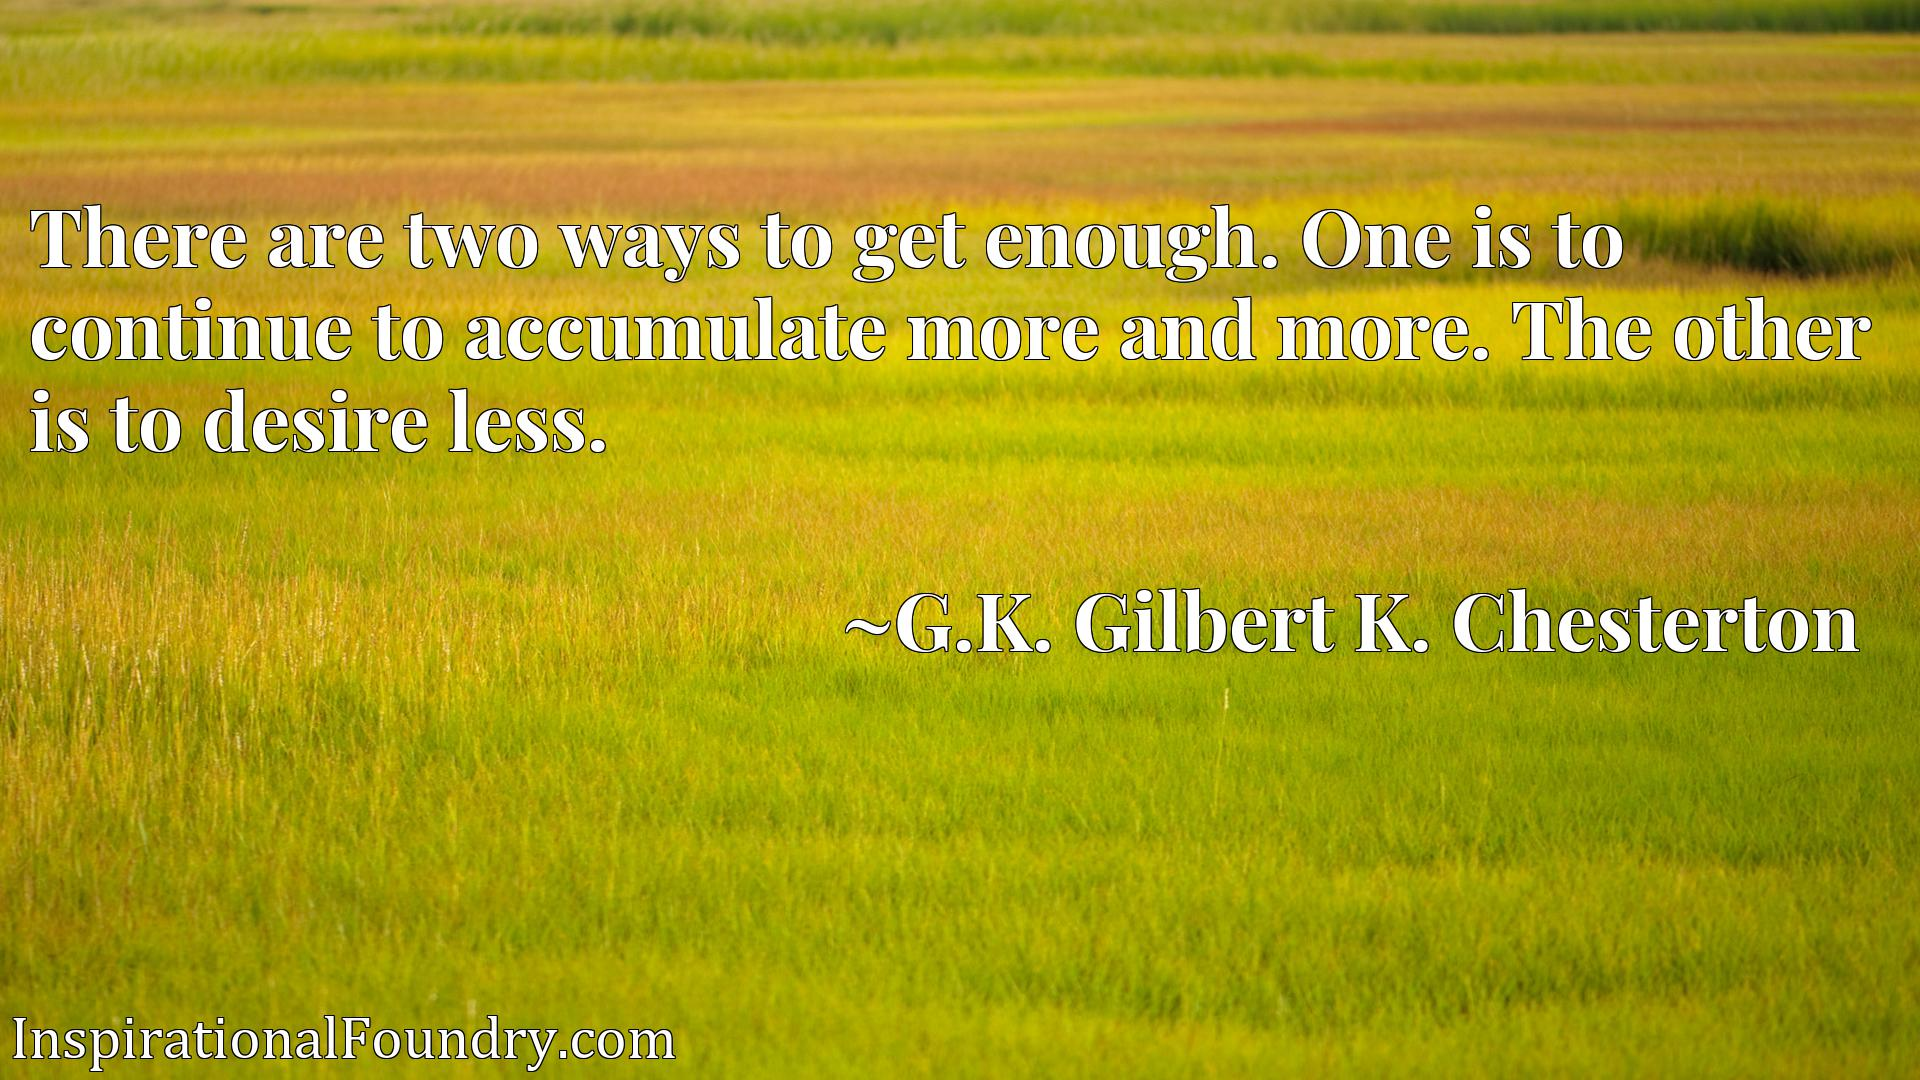 Quote Picture :There are two ways to get enough. One is to continue to accumulate more and more. The other is to desire less.